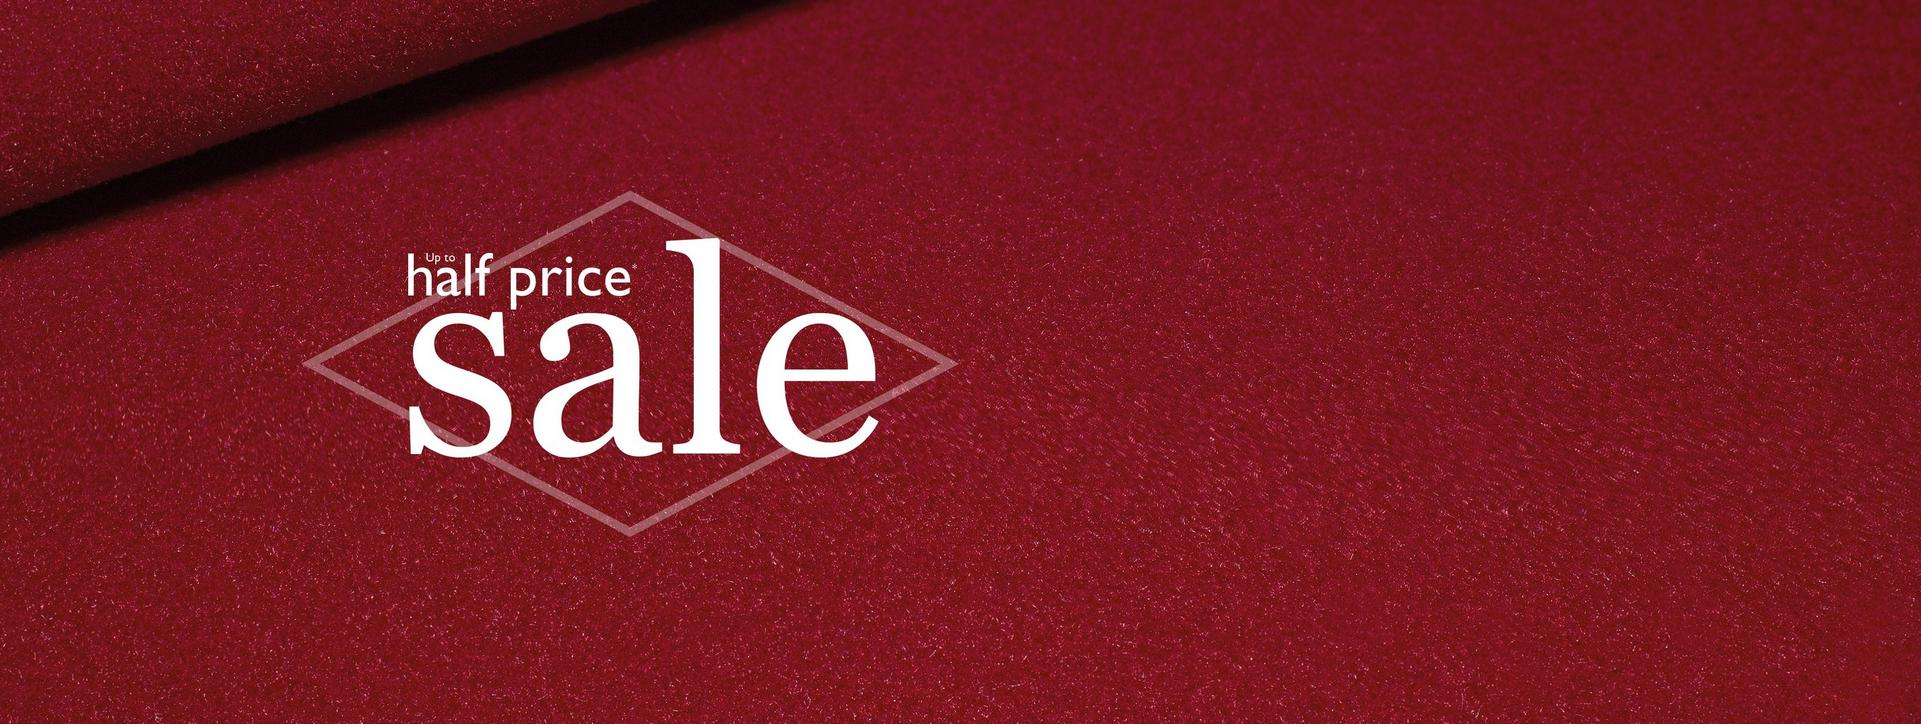 Up to half price sale at Ernest Jones